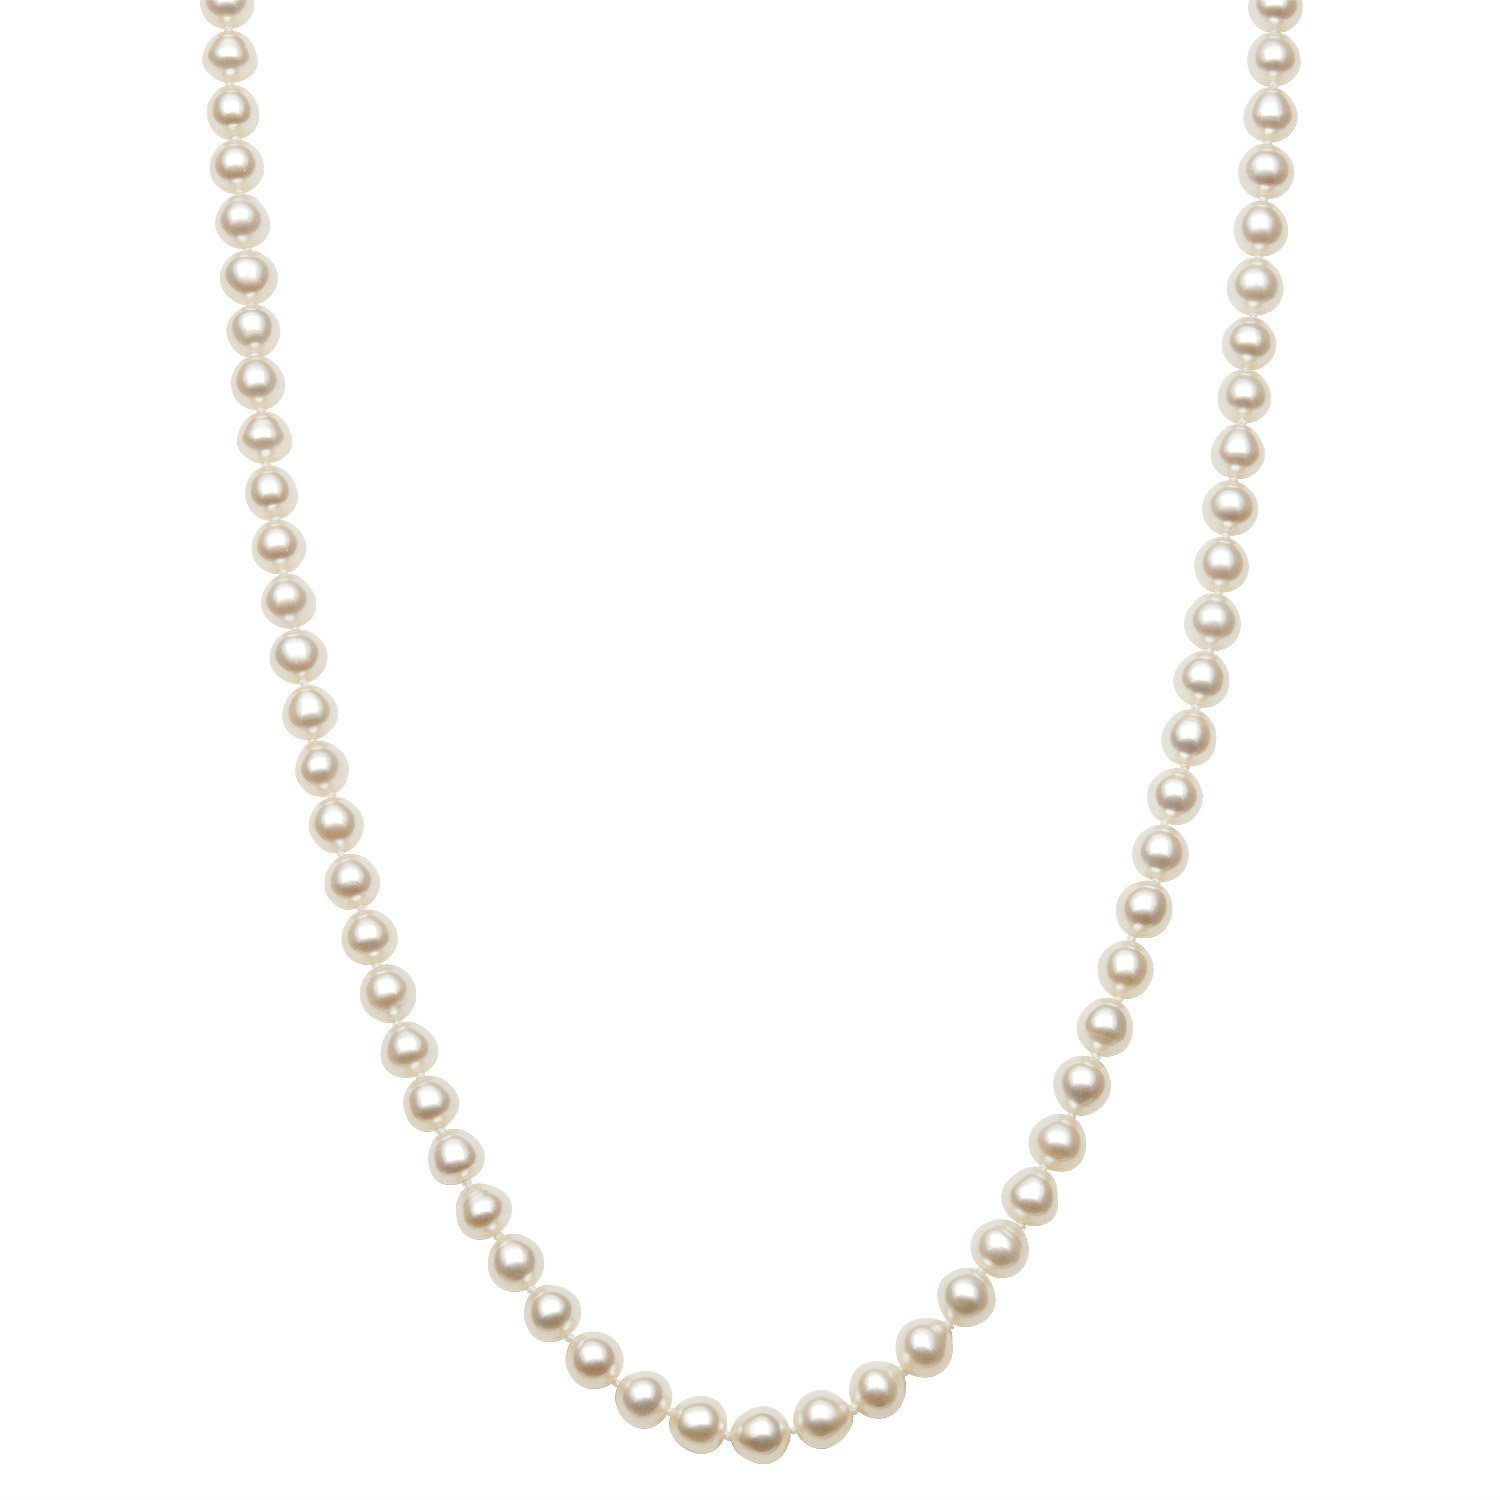 Endless Style 6.0-6.5mm White Cultured Freshwater Pearl Strand Necklace, 64'' No Metal